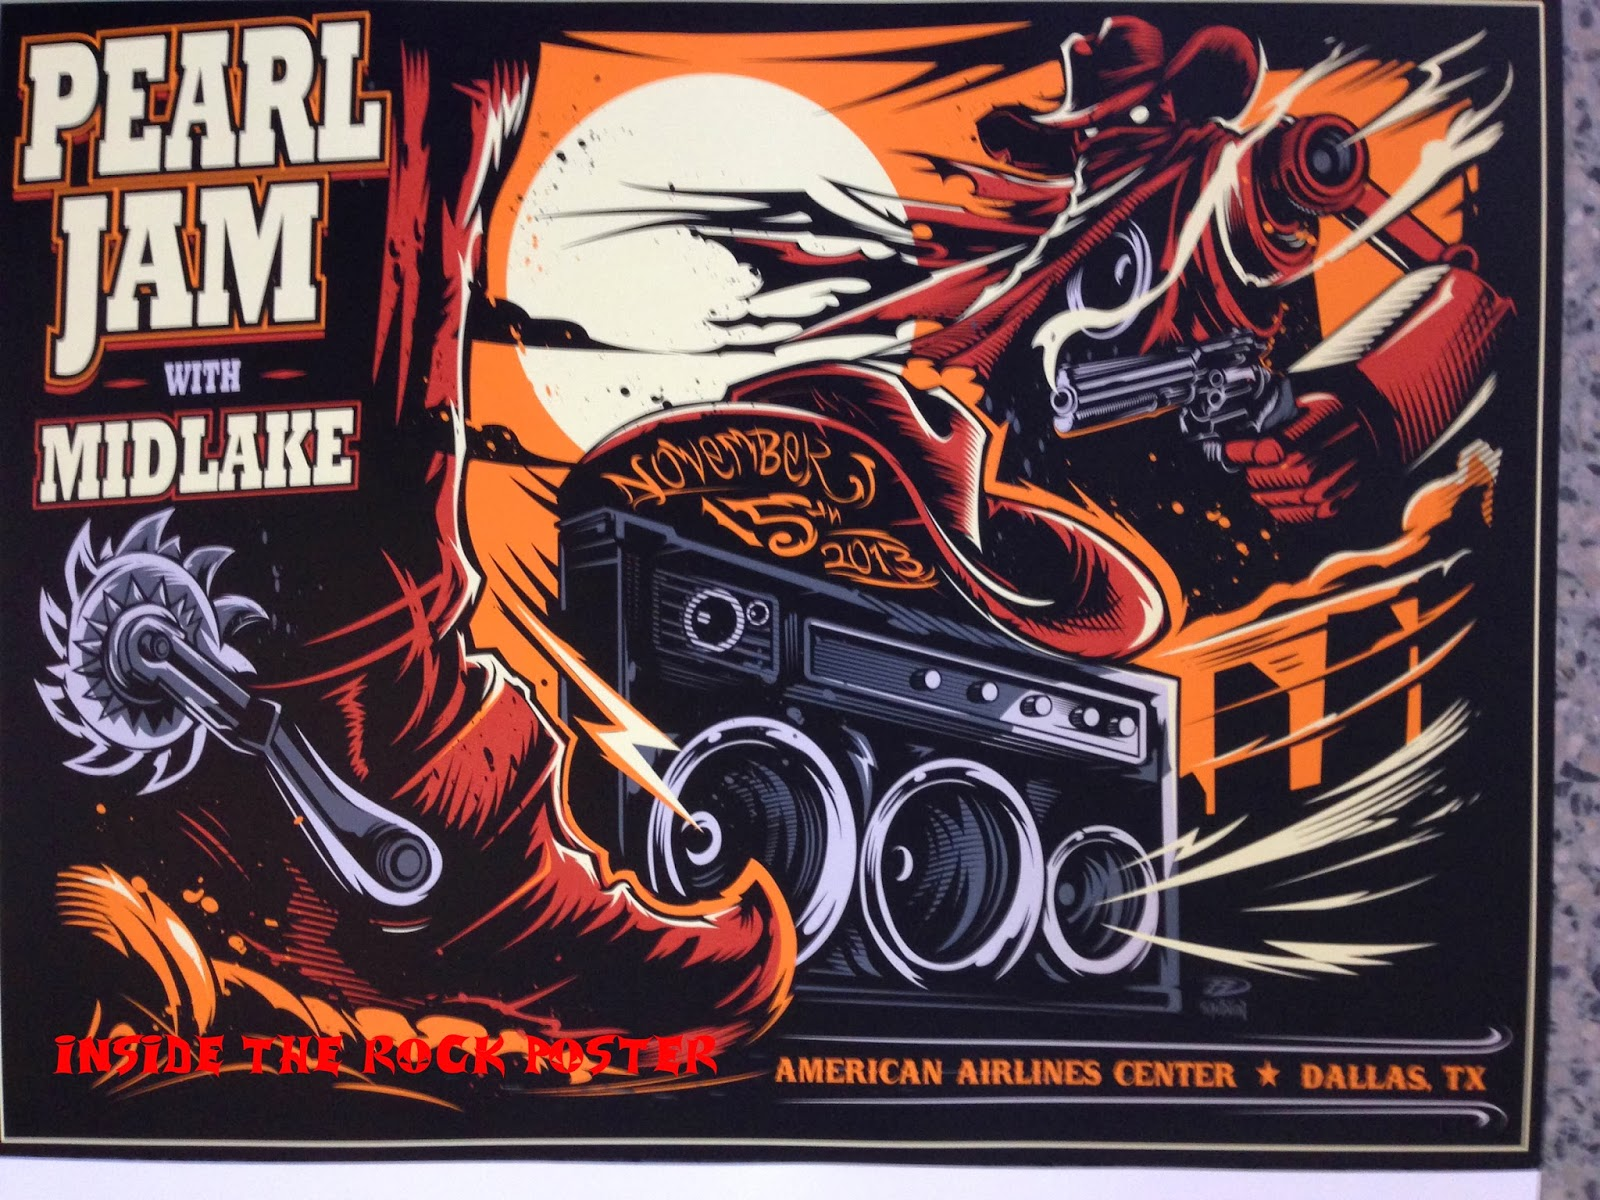 pearl jam rocking the world Pearl jam (sometimes referred to as the avocado album or simply avocado) is the eighth studio album by american alternative rock band pearl jam, released on may 2, 2006 on j records it was the first and only release for j records, their last album issued by sony music.